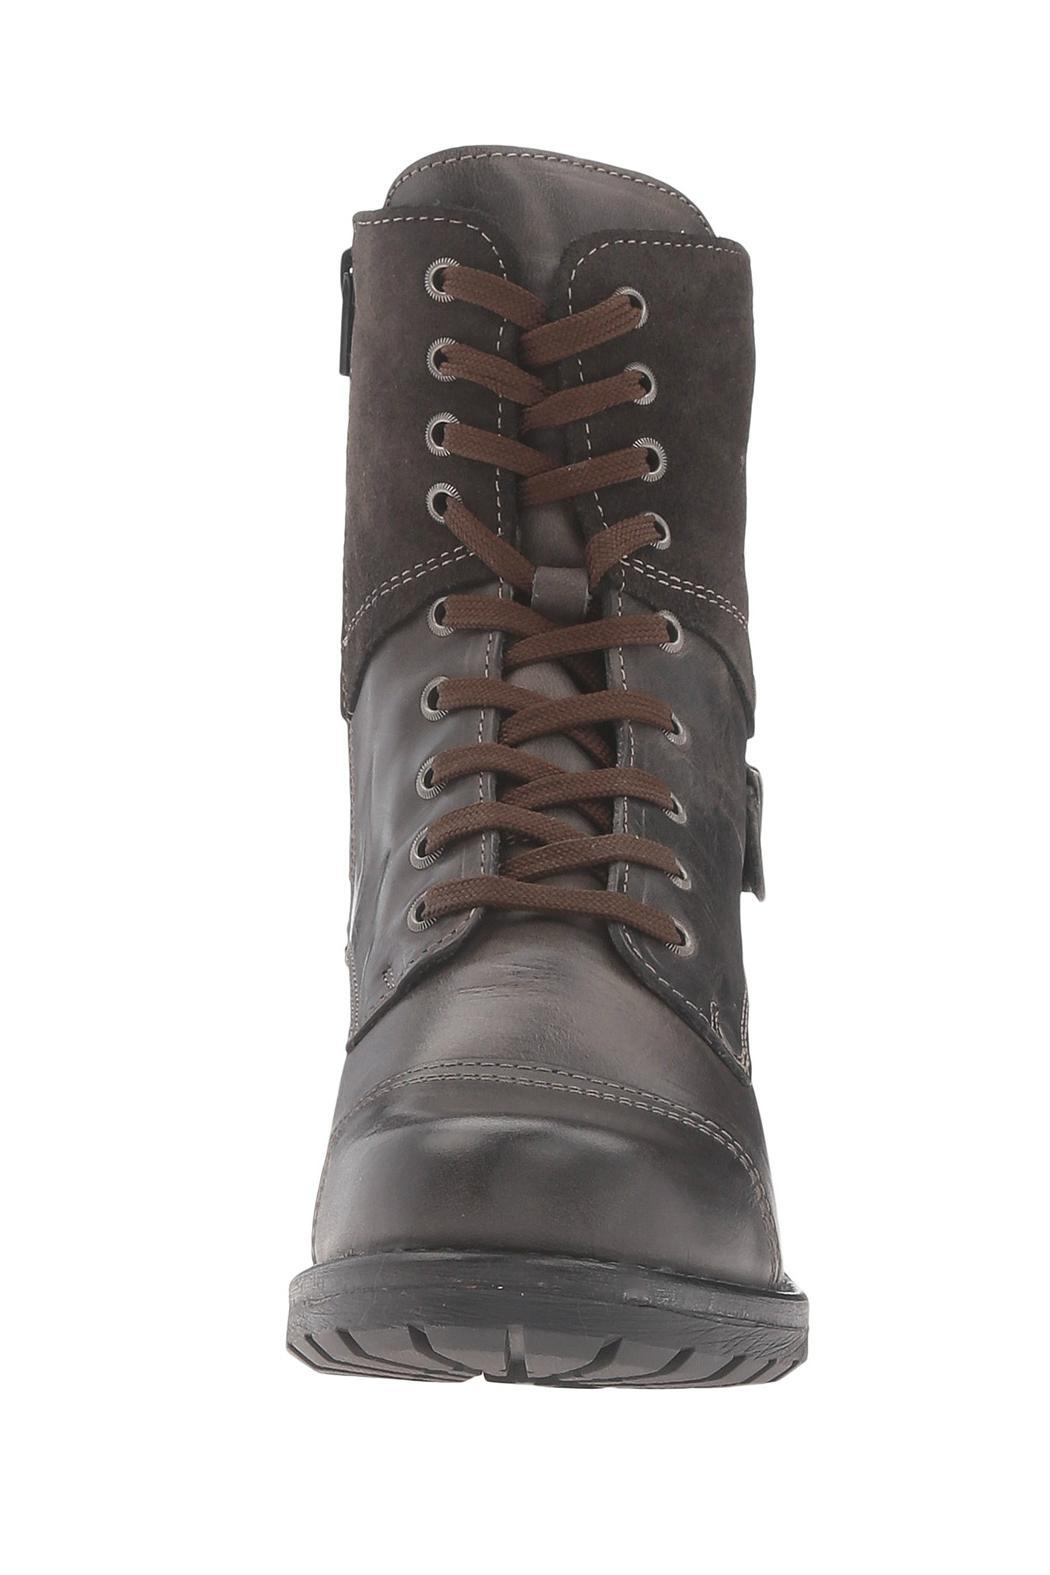 Taos Crave Lace-Up Boot from Branford by Shoetique — Shoptiques